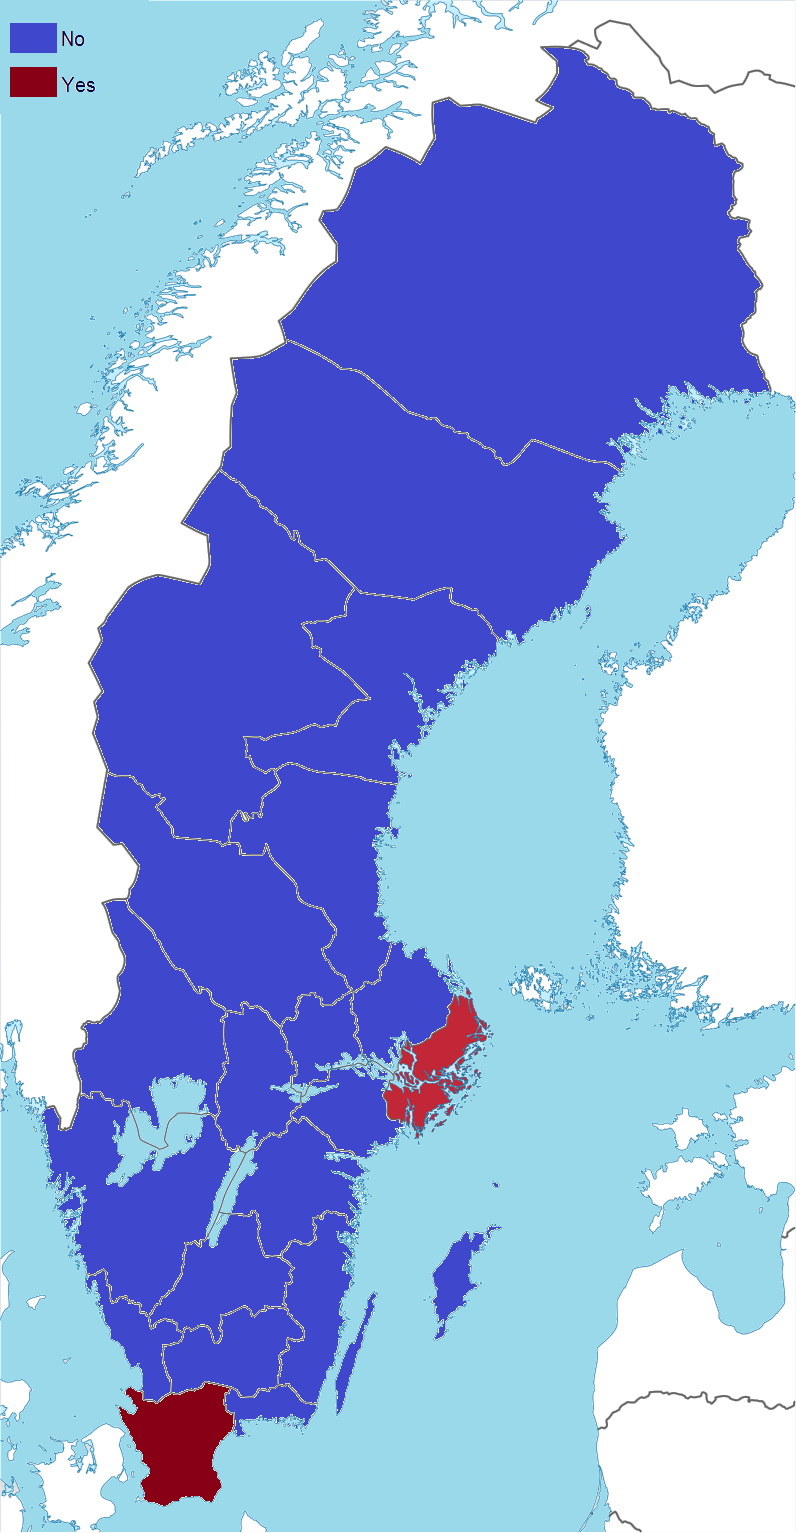 Swedish euro referendum results by county 2003